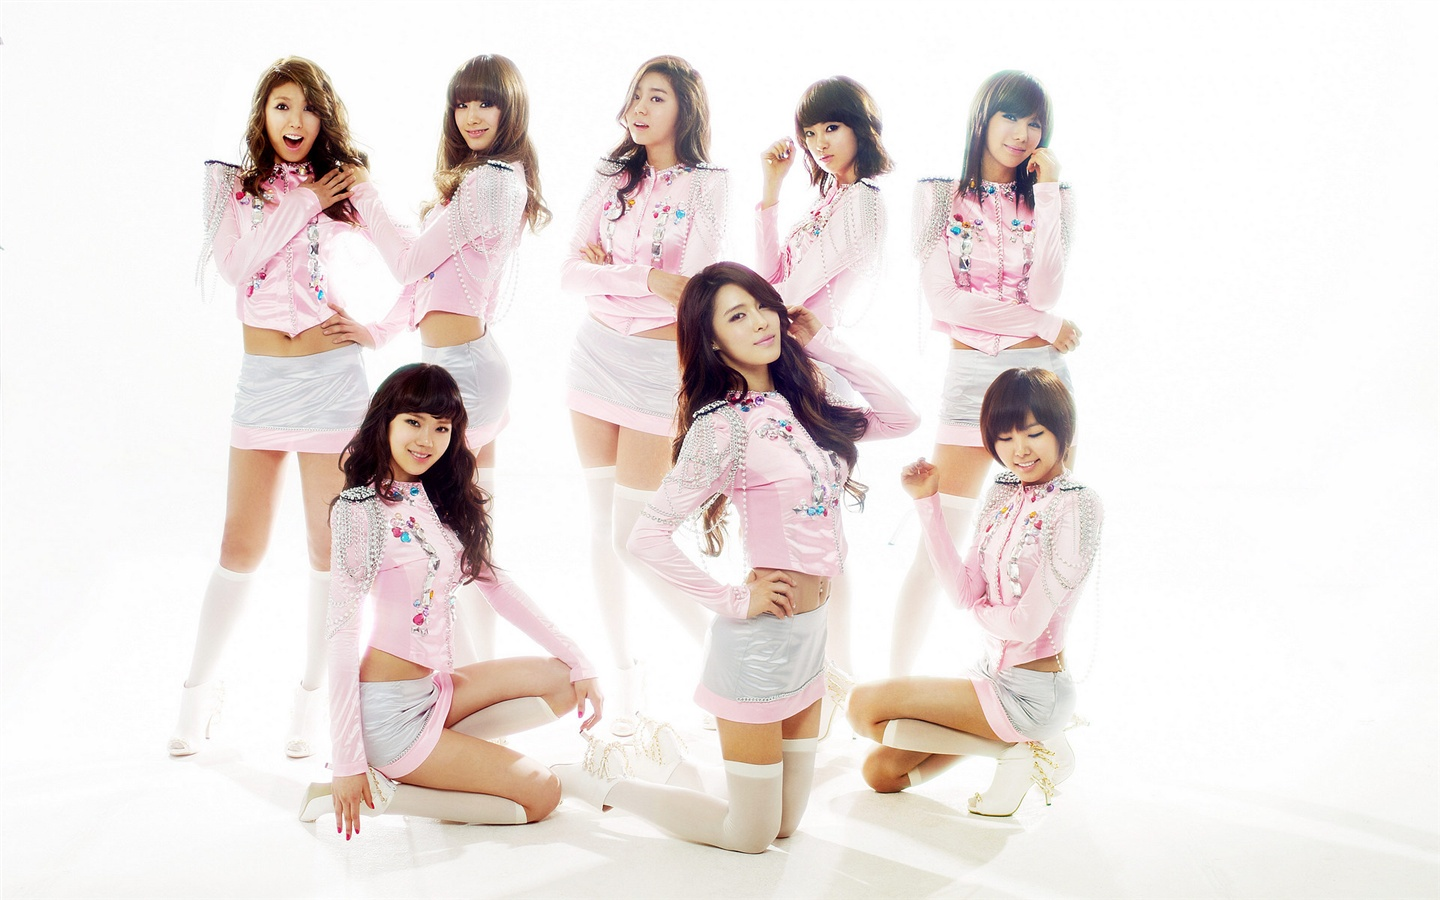 After school south korea asian music girls 05 wallpaper 1440x900